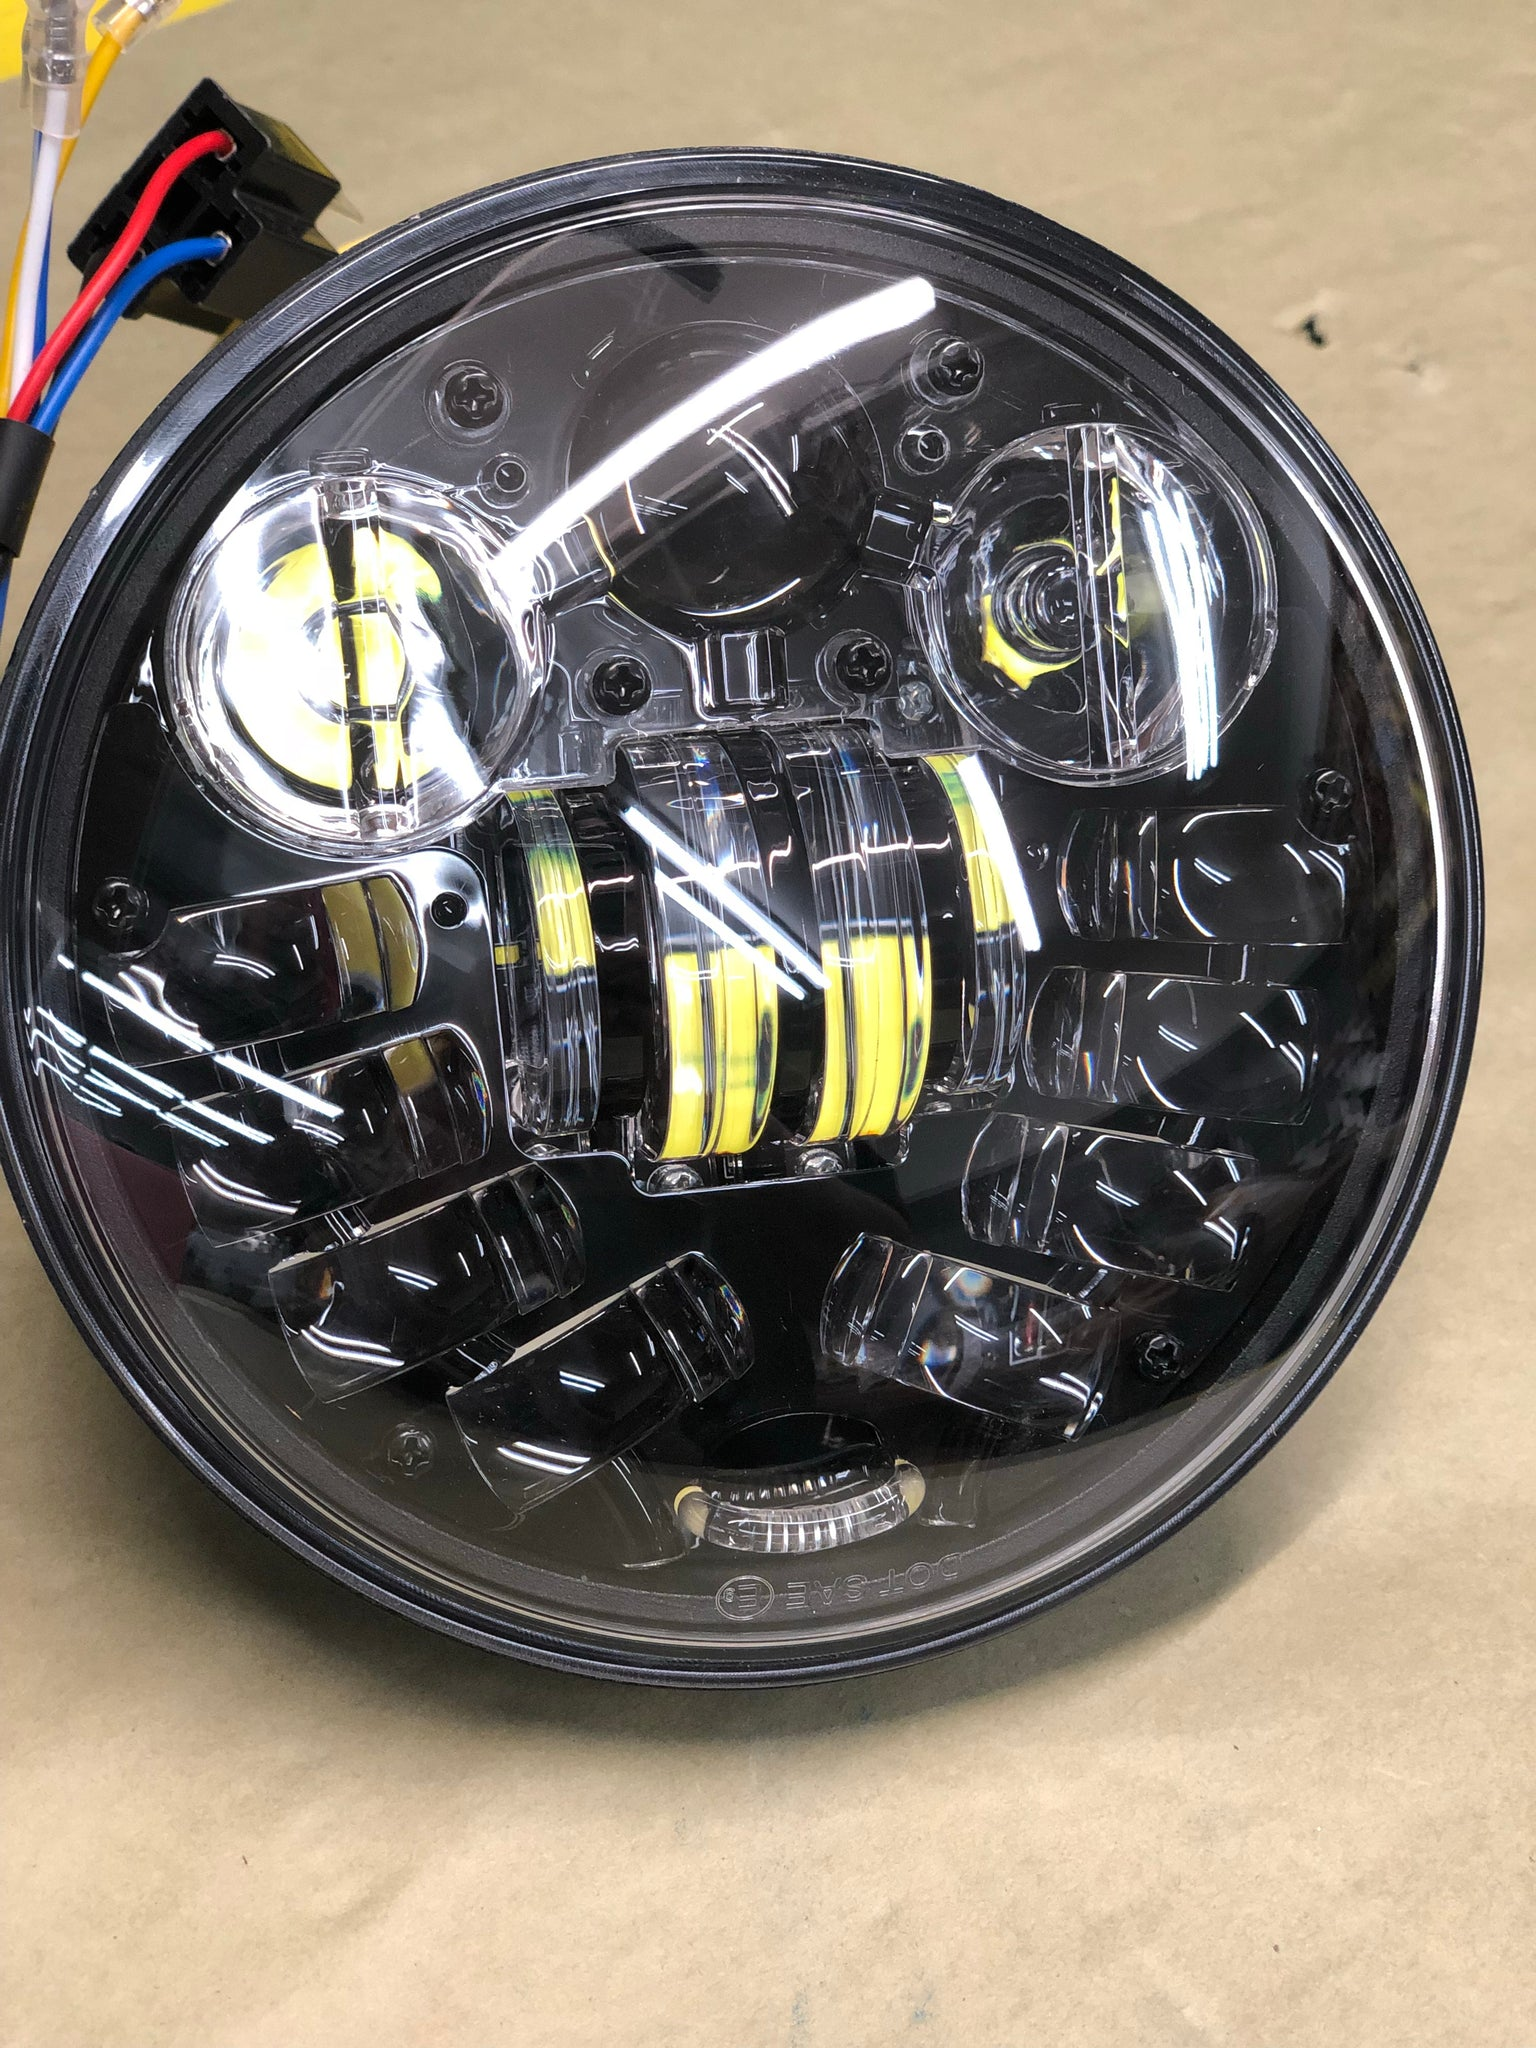 575 Led Headlight With Turn Signals Valley Kustoms